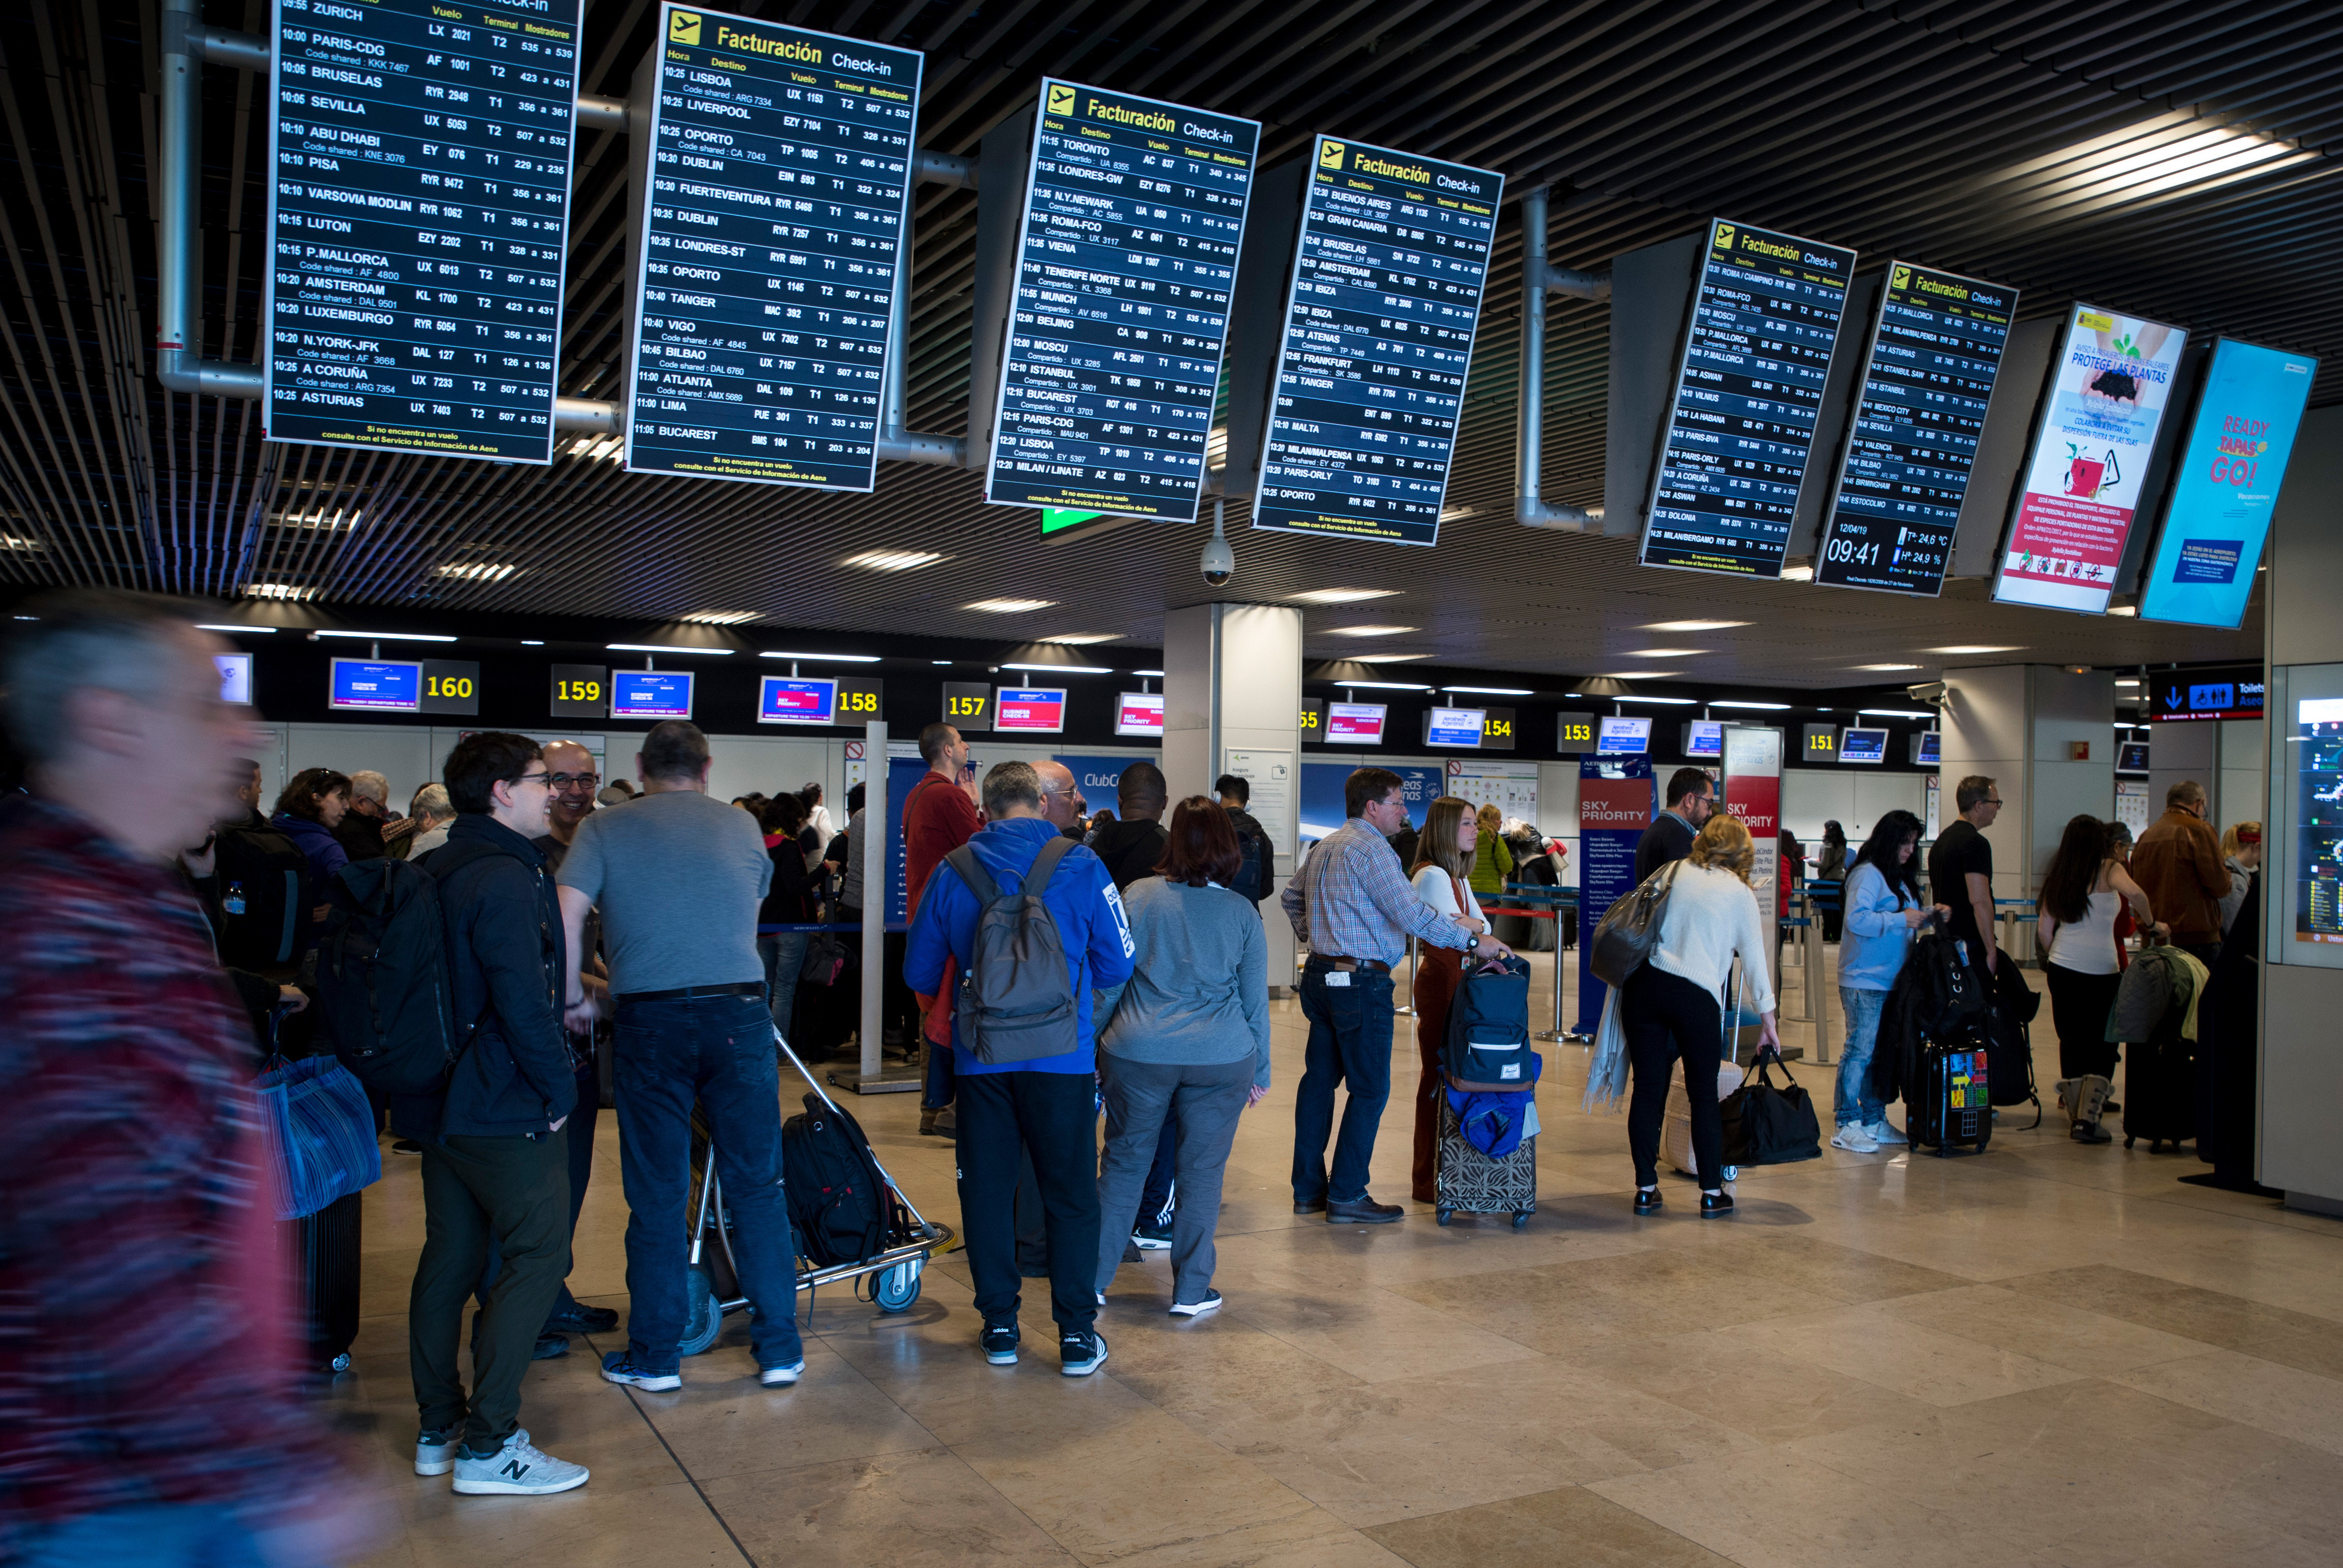 Queues are to be expected over the weekend at Spanish airports. Credit: PA